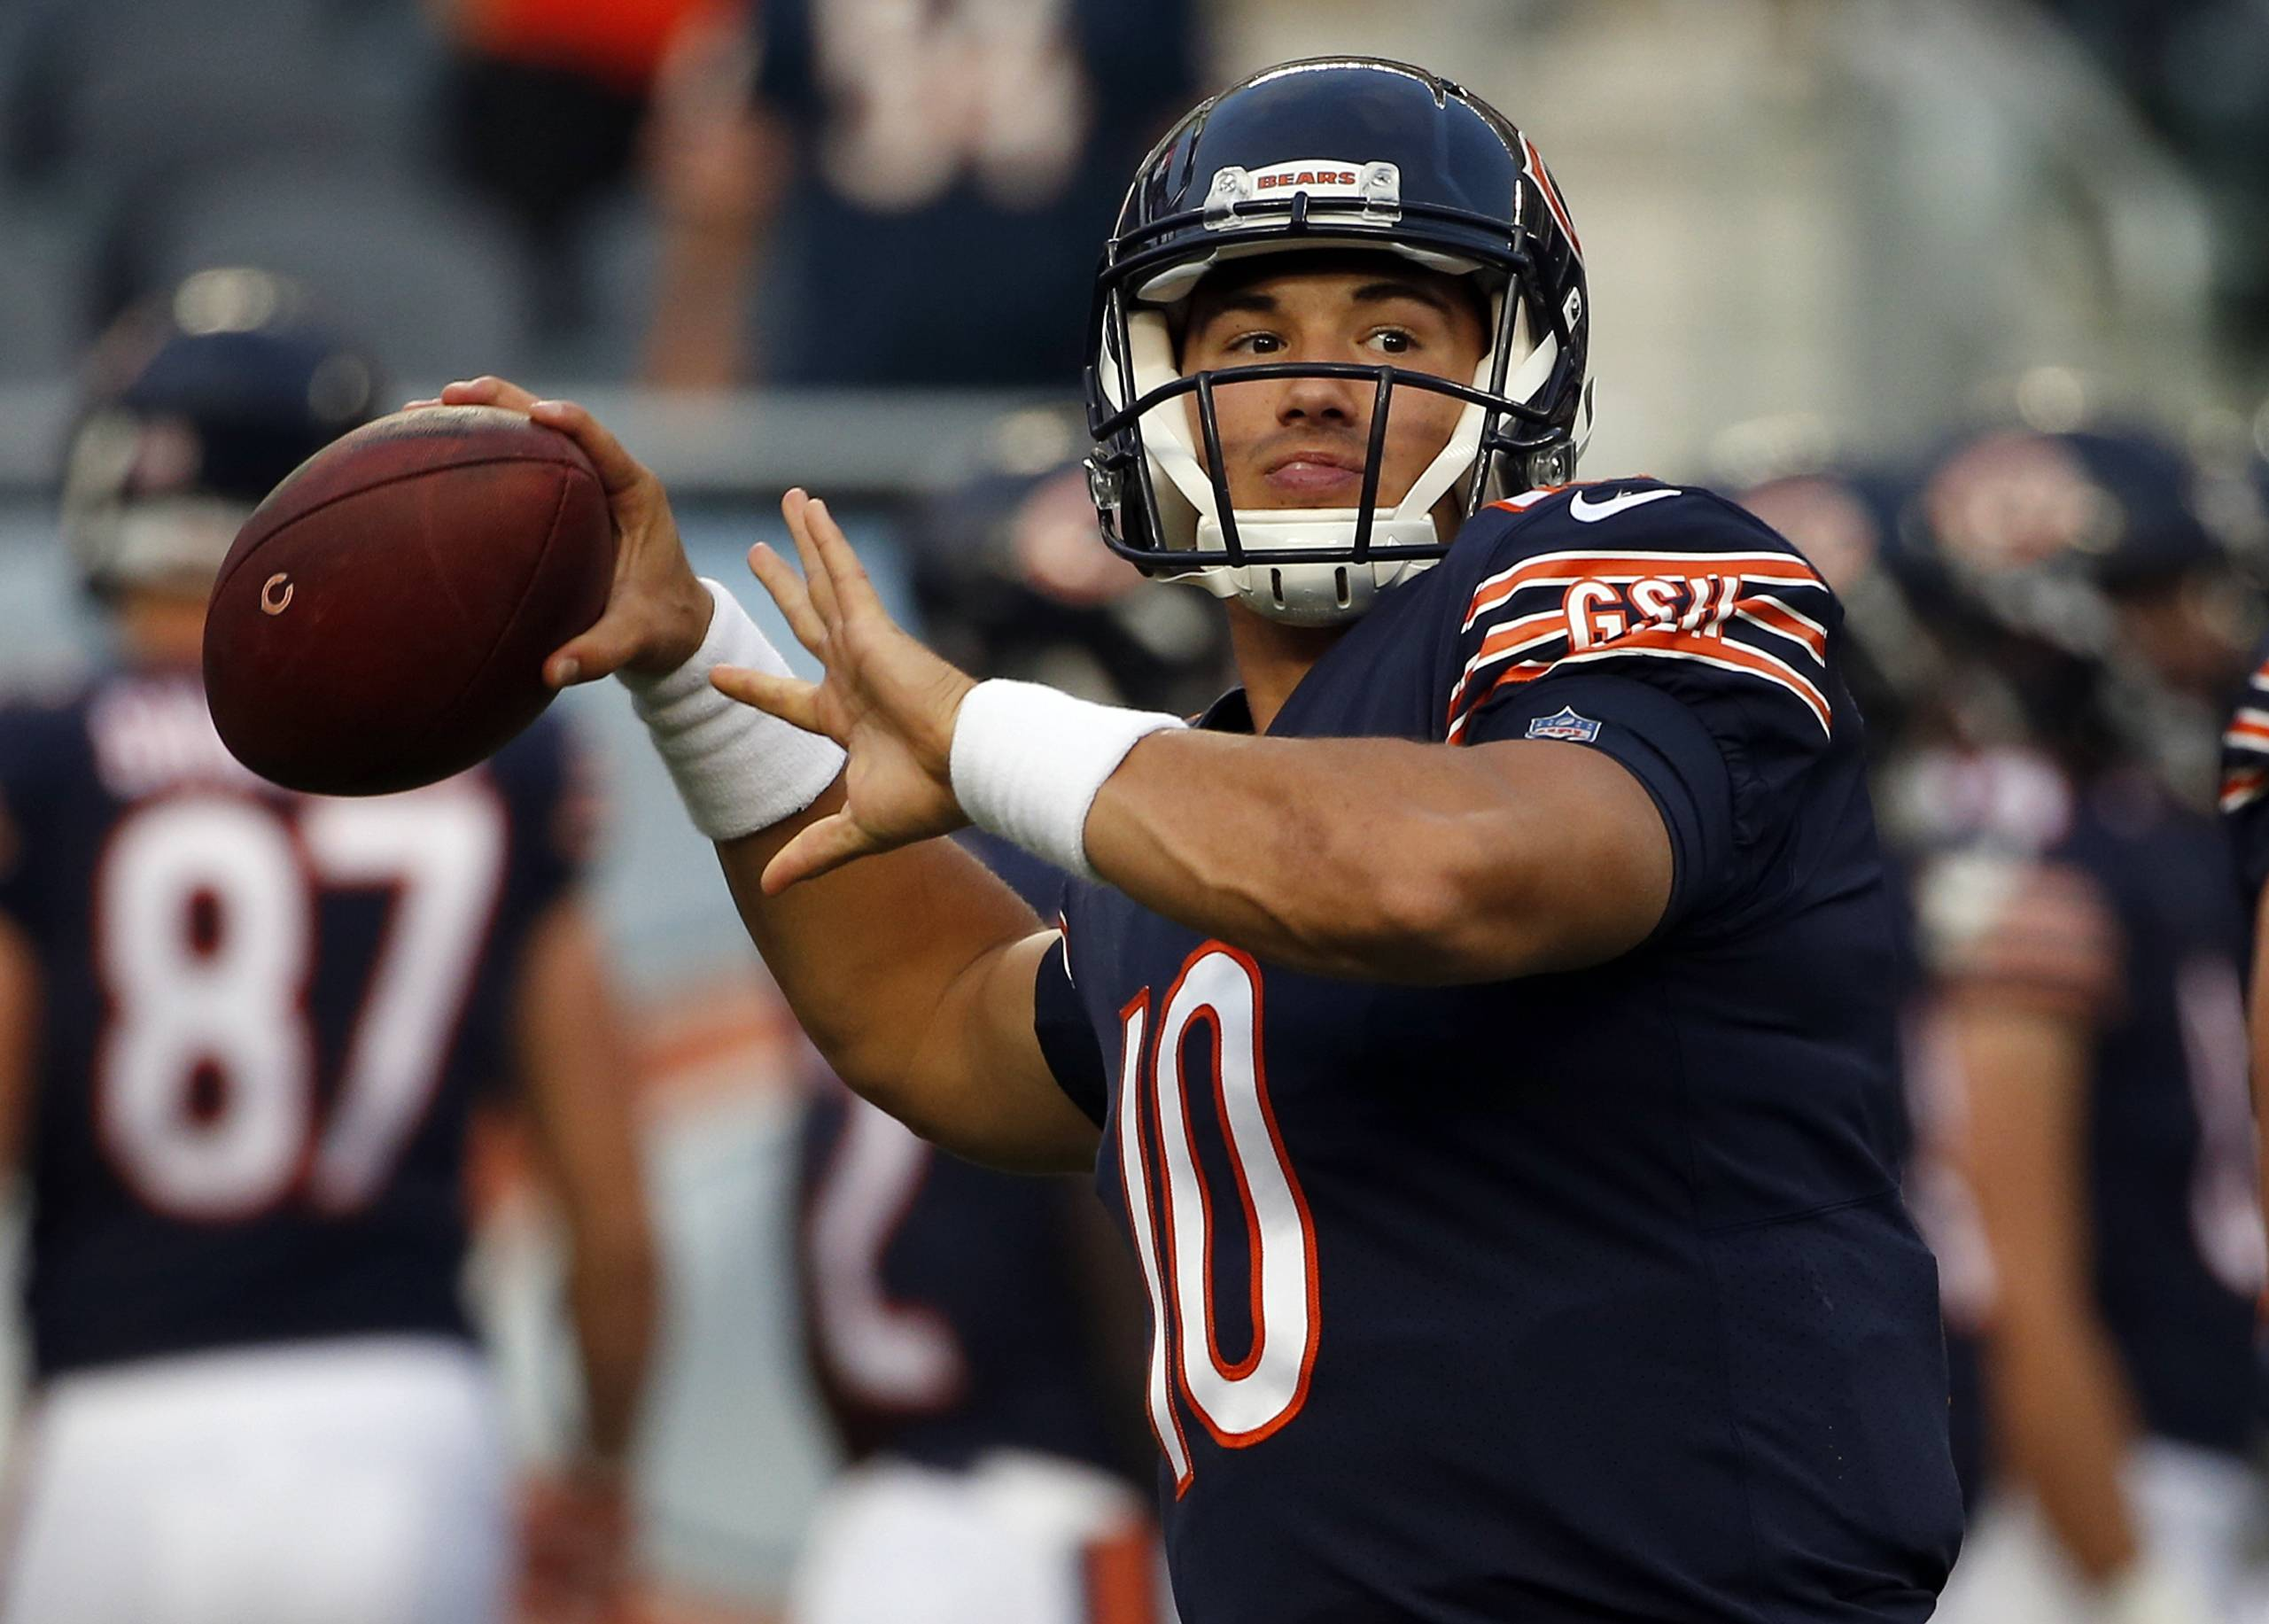 Chicago Bears quarterback Mitchell Trubisky (10) warms up before an NFL football game against the Cleveland Browns, Thursday, Aug. 31, 2017, in Chicago. (AP Photo/Nam Y. Huh)